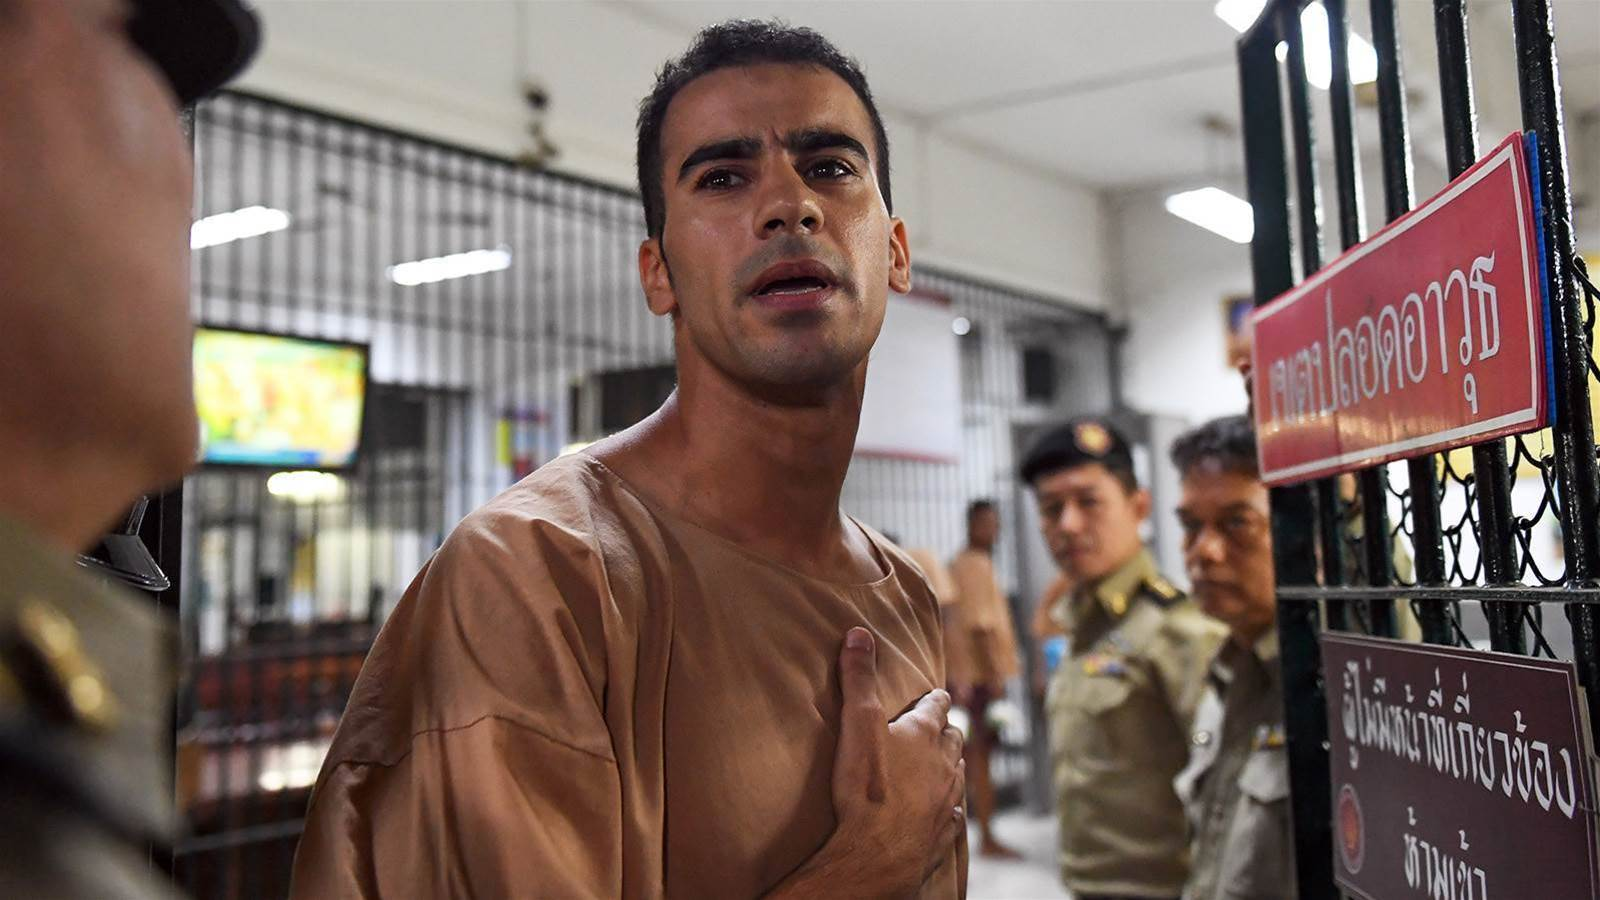 'Help me' - but Thailand keeps Hakeem jailed